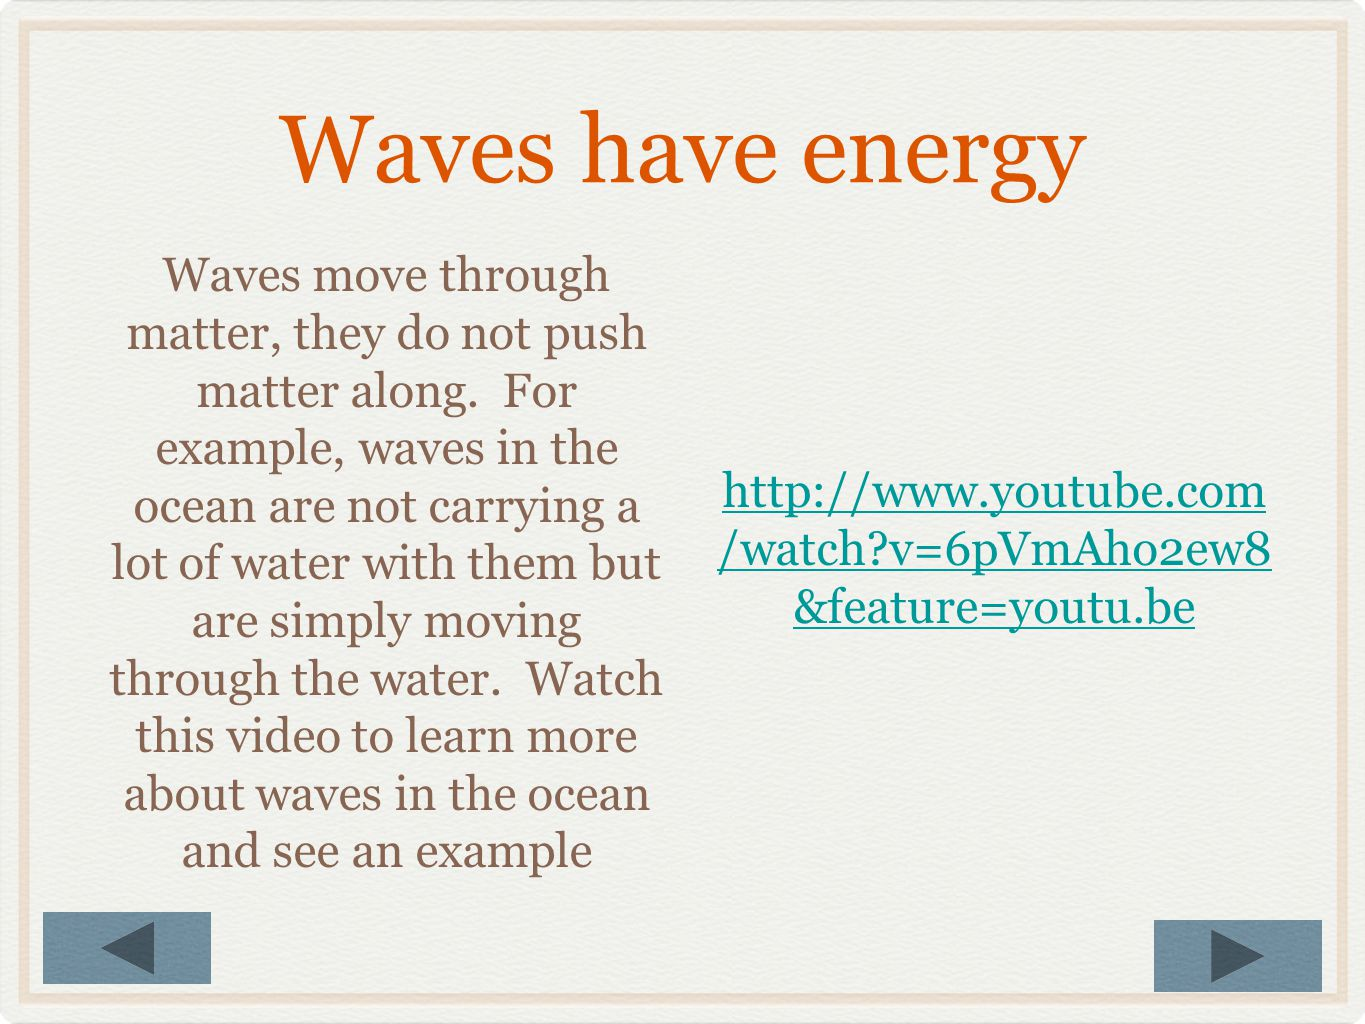 Different types of waves - There are other waves besides sound waves. Waves also move through the water and waves known as seismic waves cause the Ear